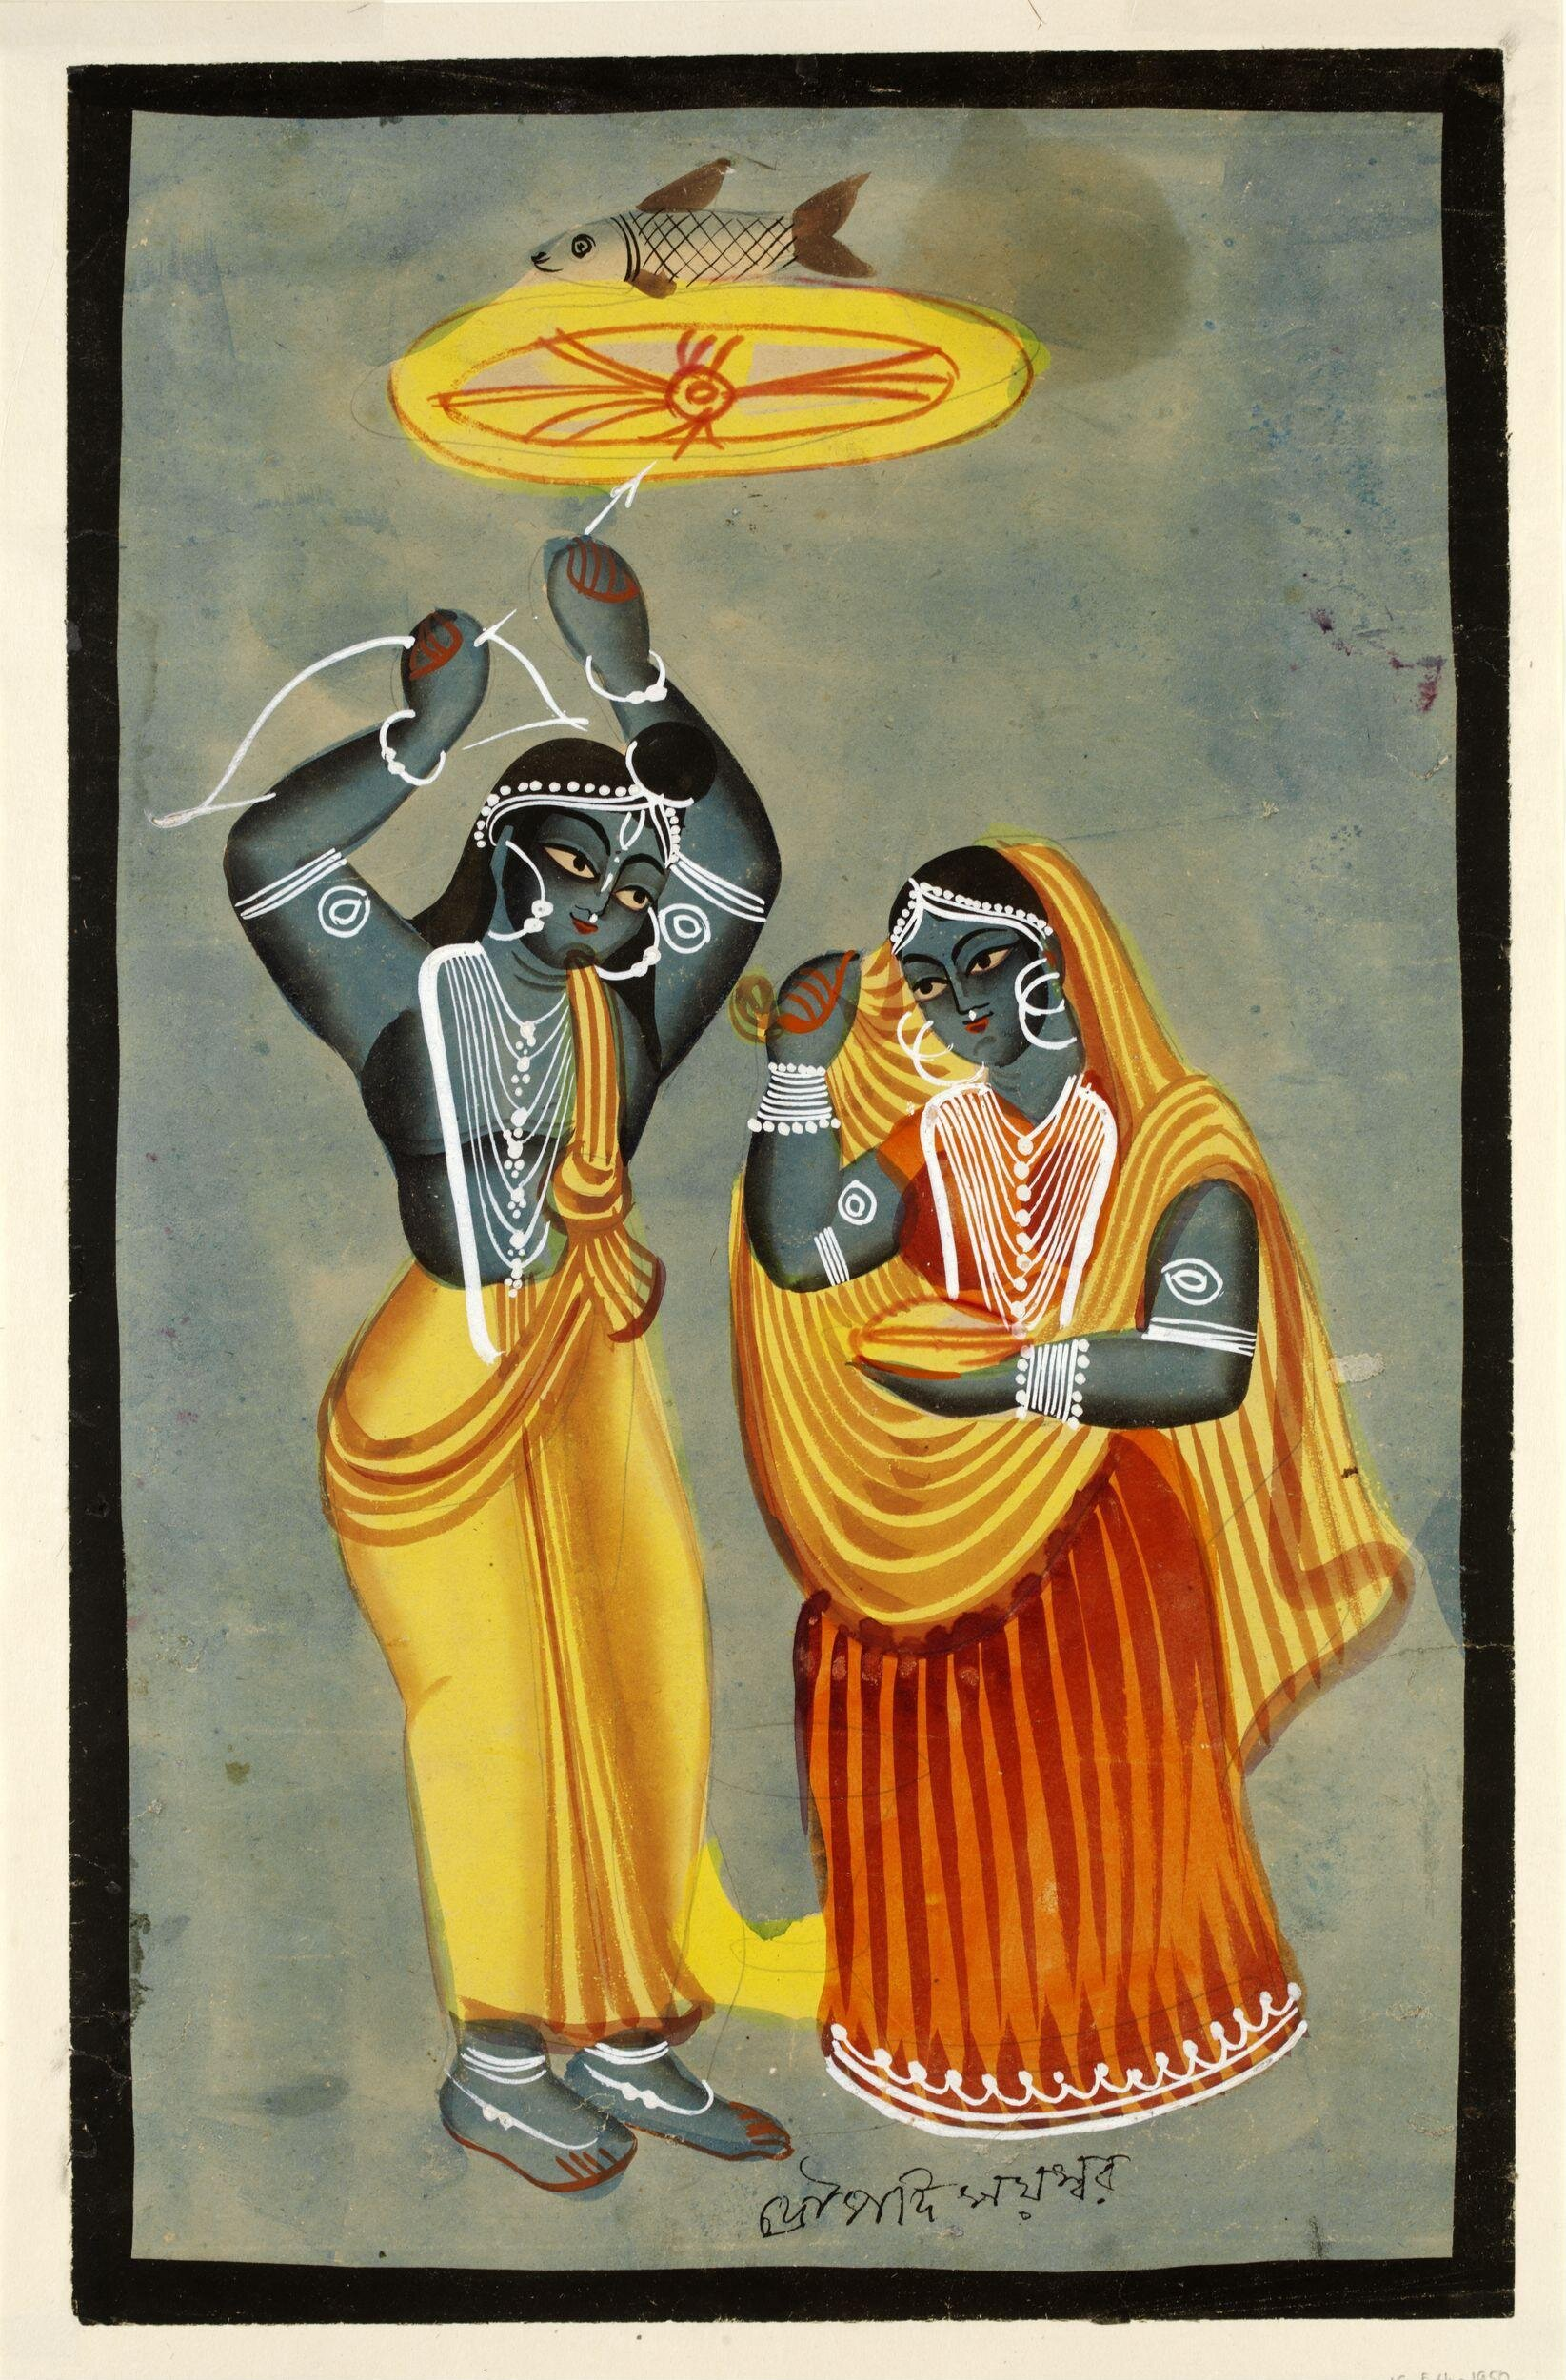 Arjuna shooting at the eye of a fish to win Draupadi in marriage, Kalighat painting - Pandava